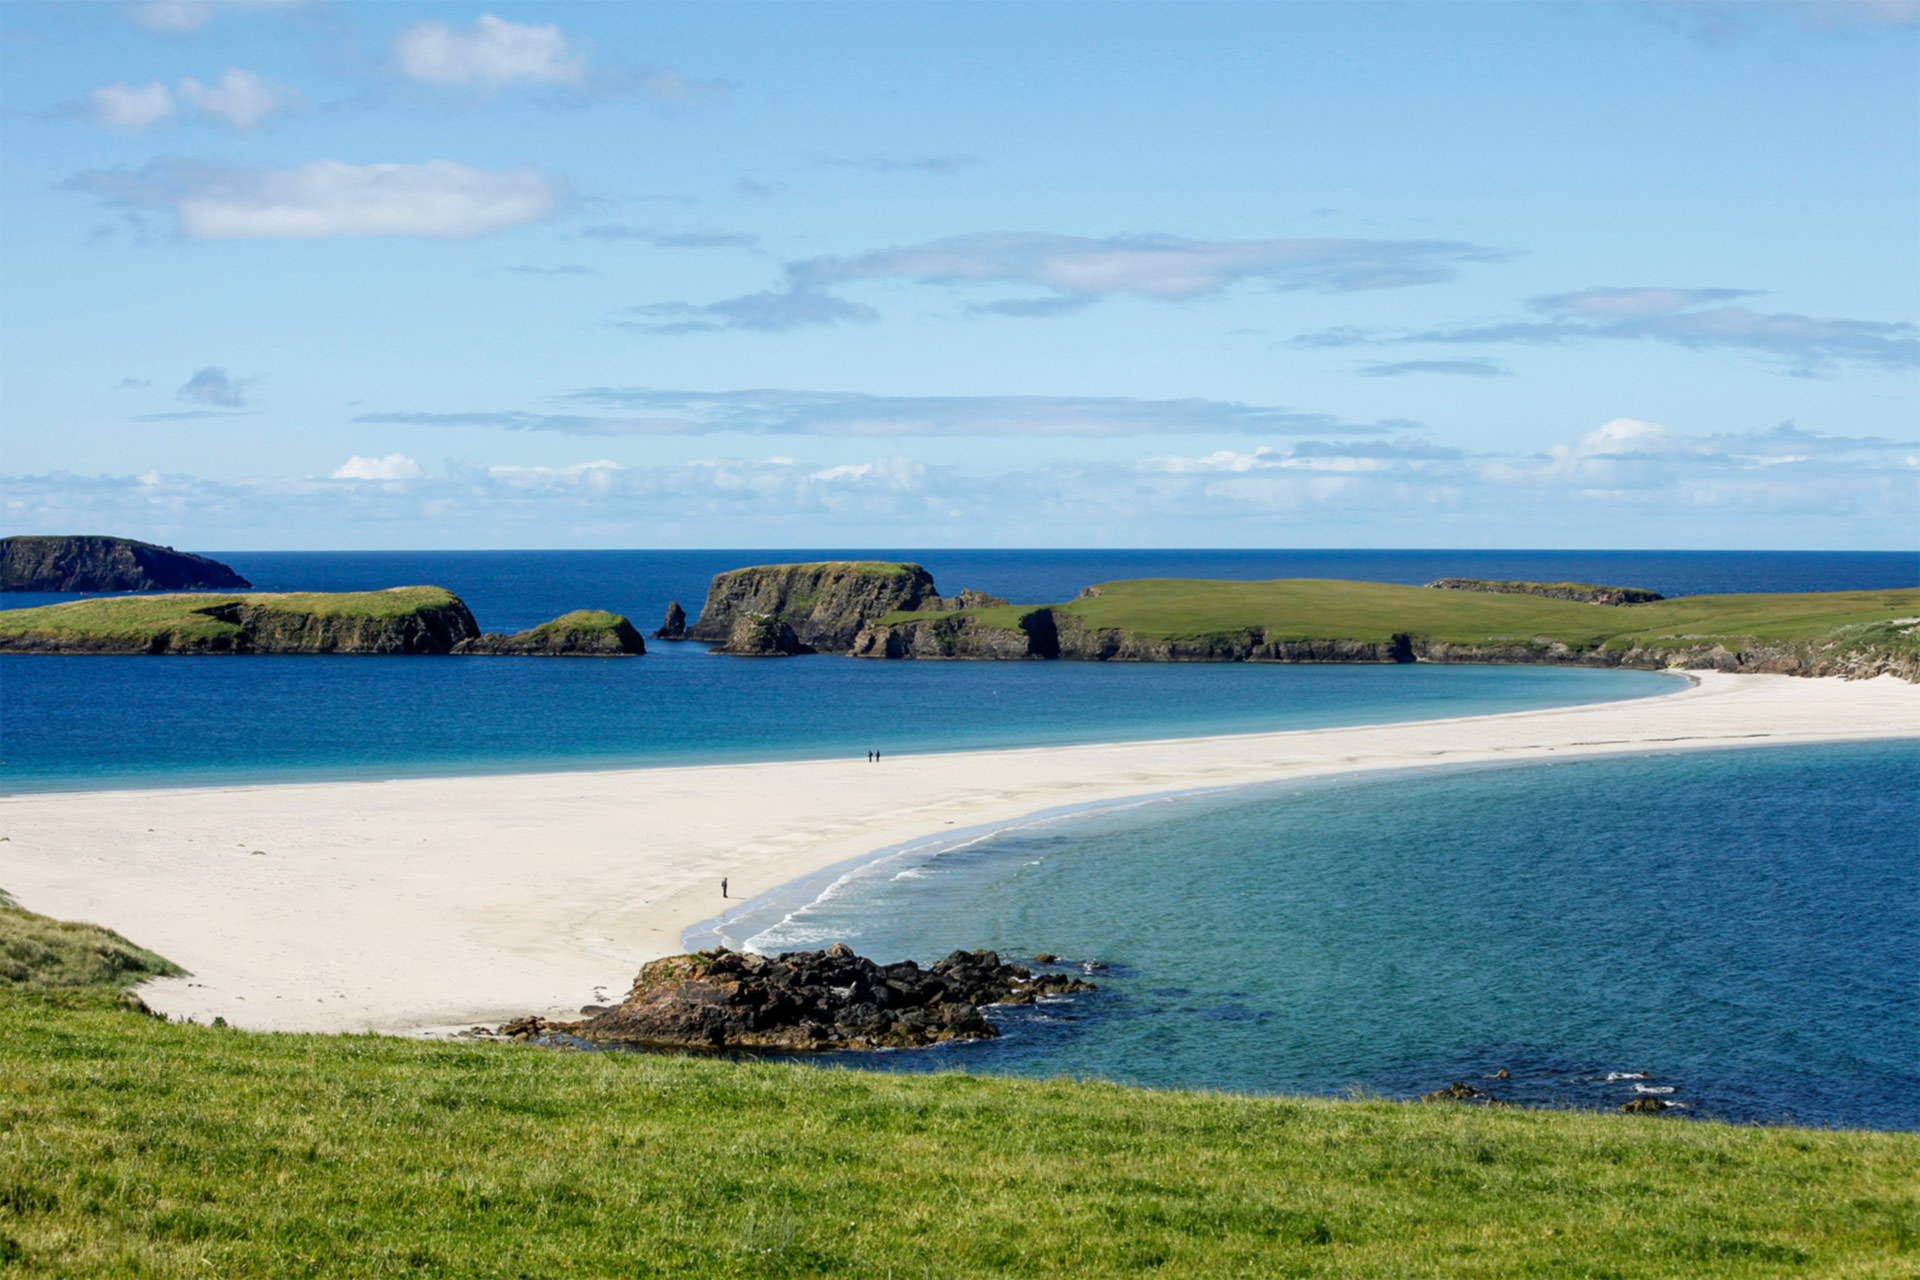 St Ninian's Isle joined to Shetland Mainland by a tombolo of sand at Bigton, Shetland.